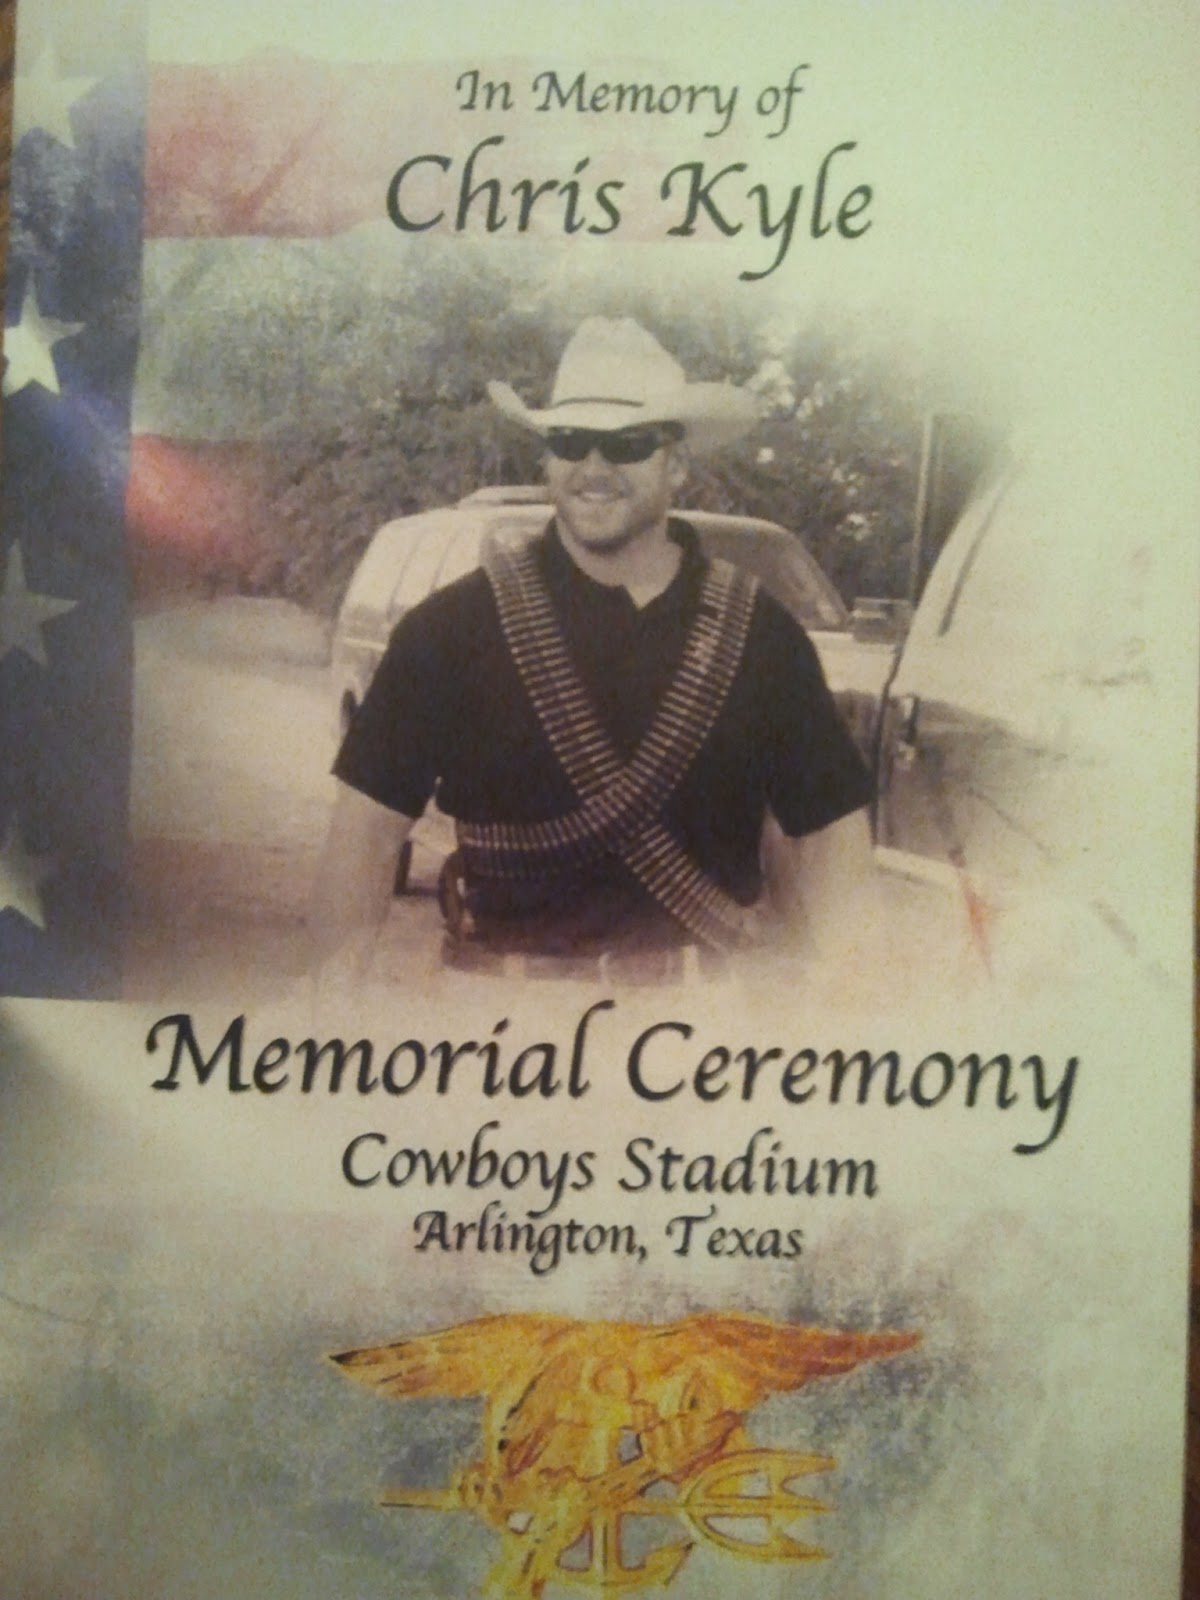 The Real Legacy of Chris Kyle: A 'True American Hero' Who Devoted His Life to Serving Others